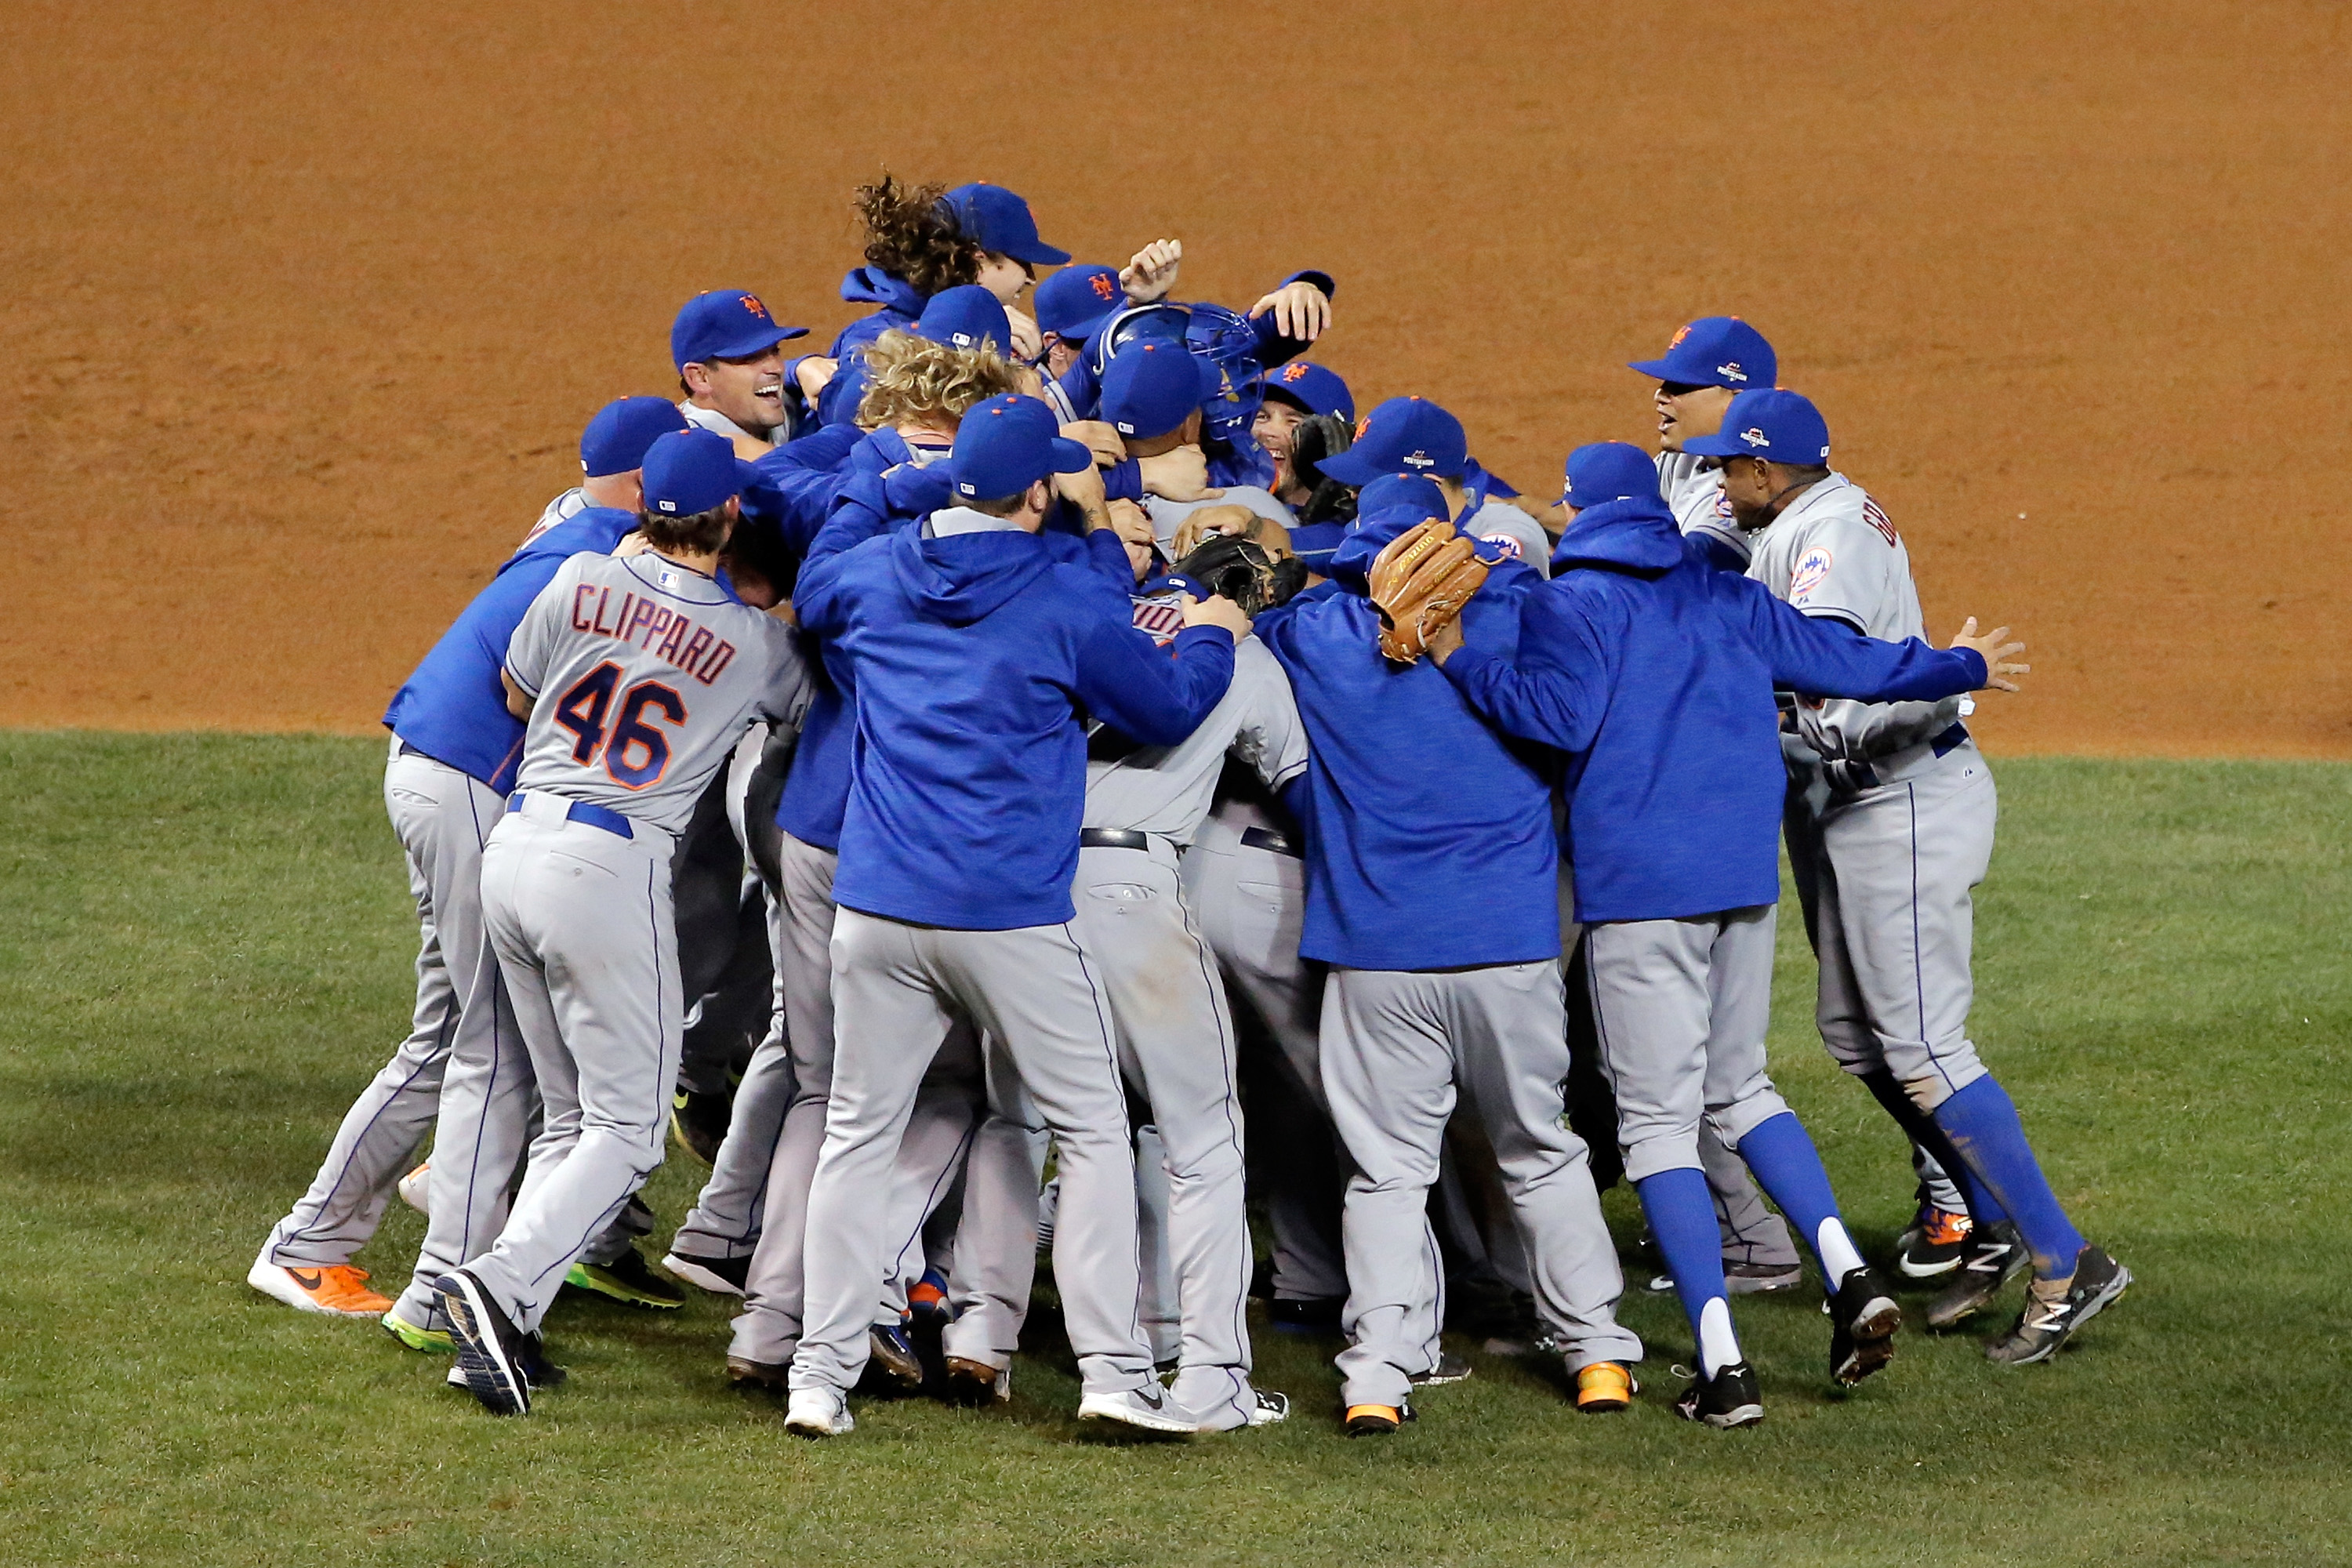 14 reasons you need to root for the mets in the world series 14 reasons you need to root for the mets in the world series playbuzz kristyandbryce Gallery